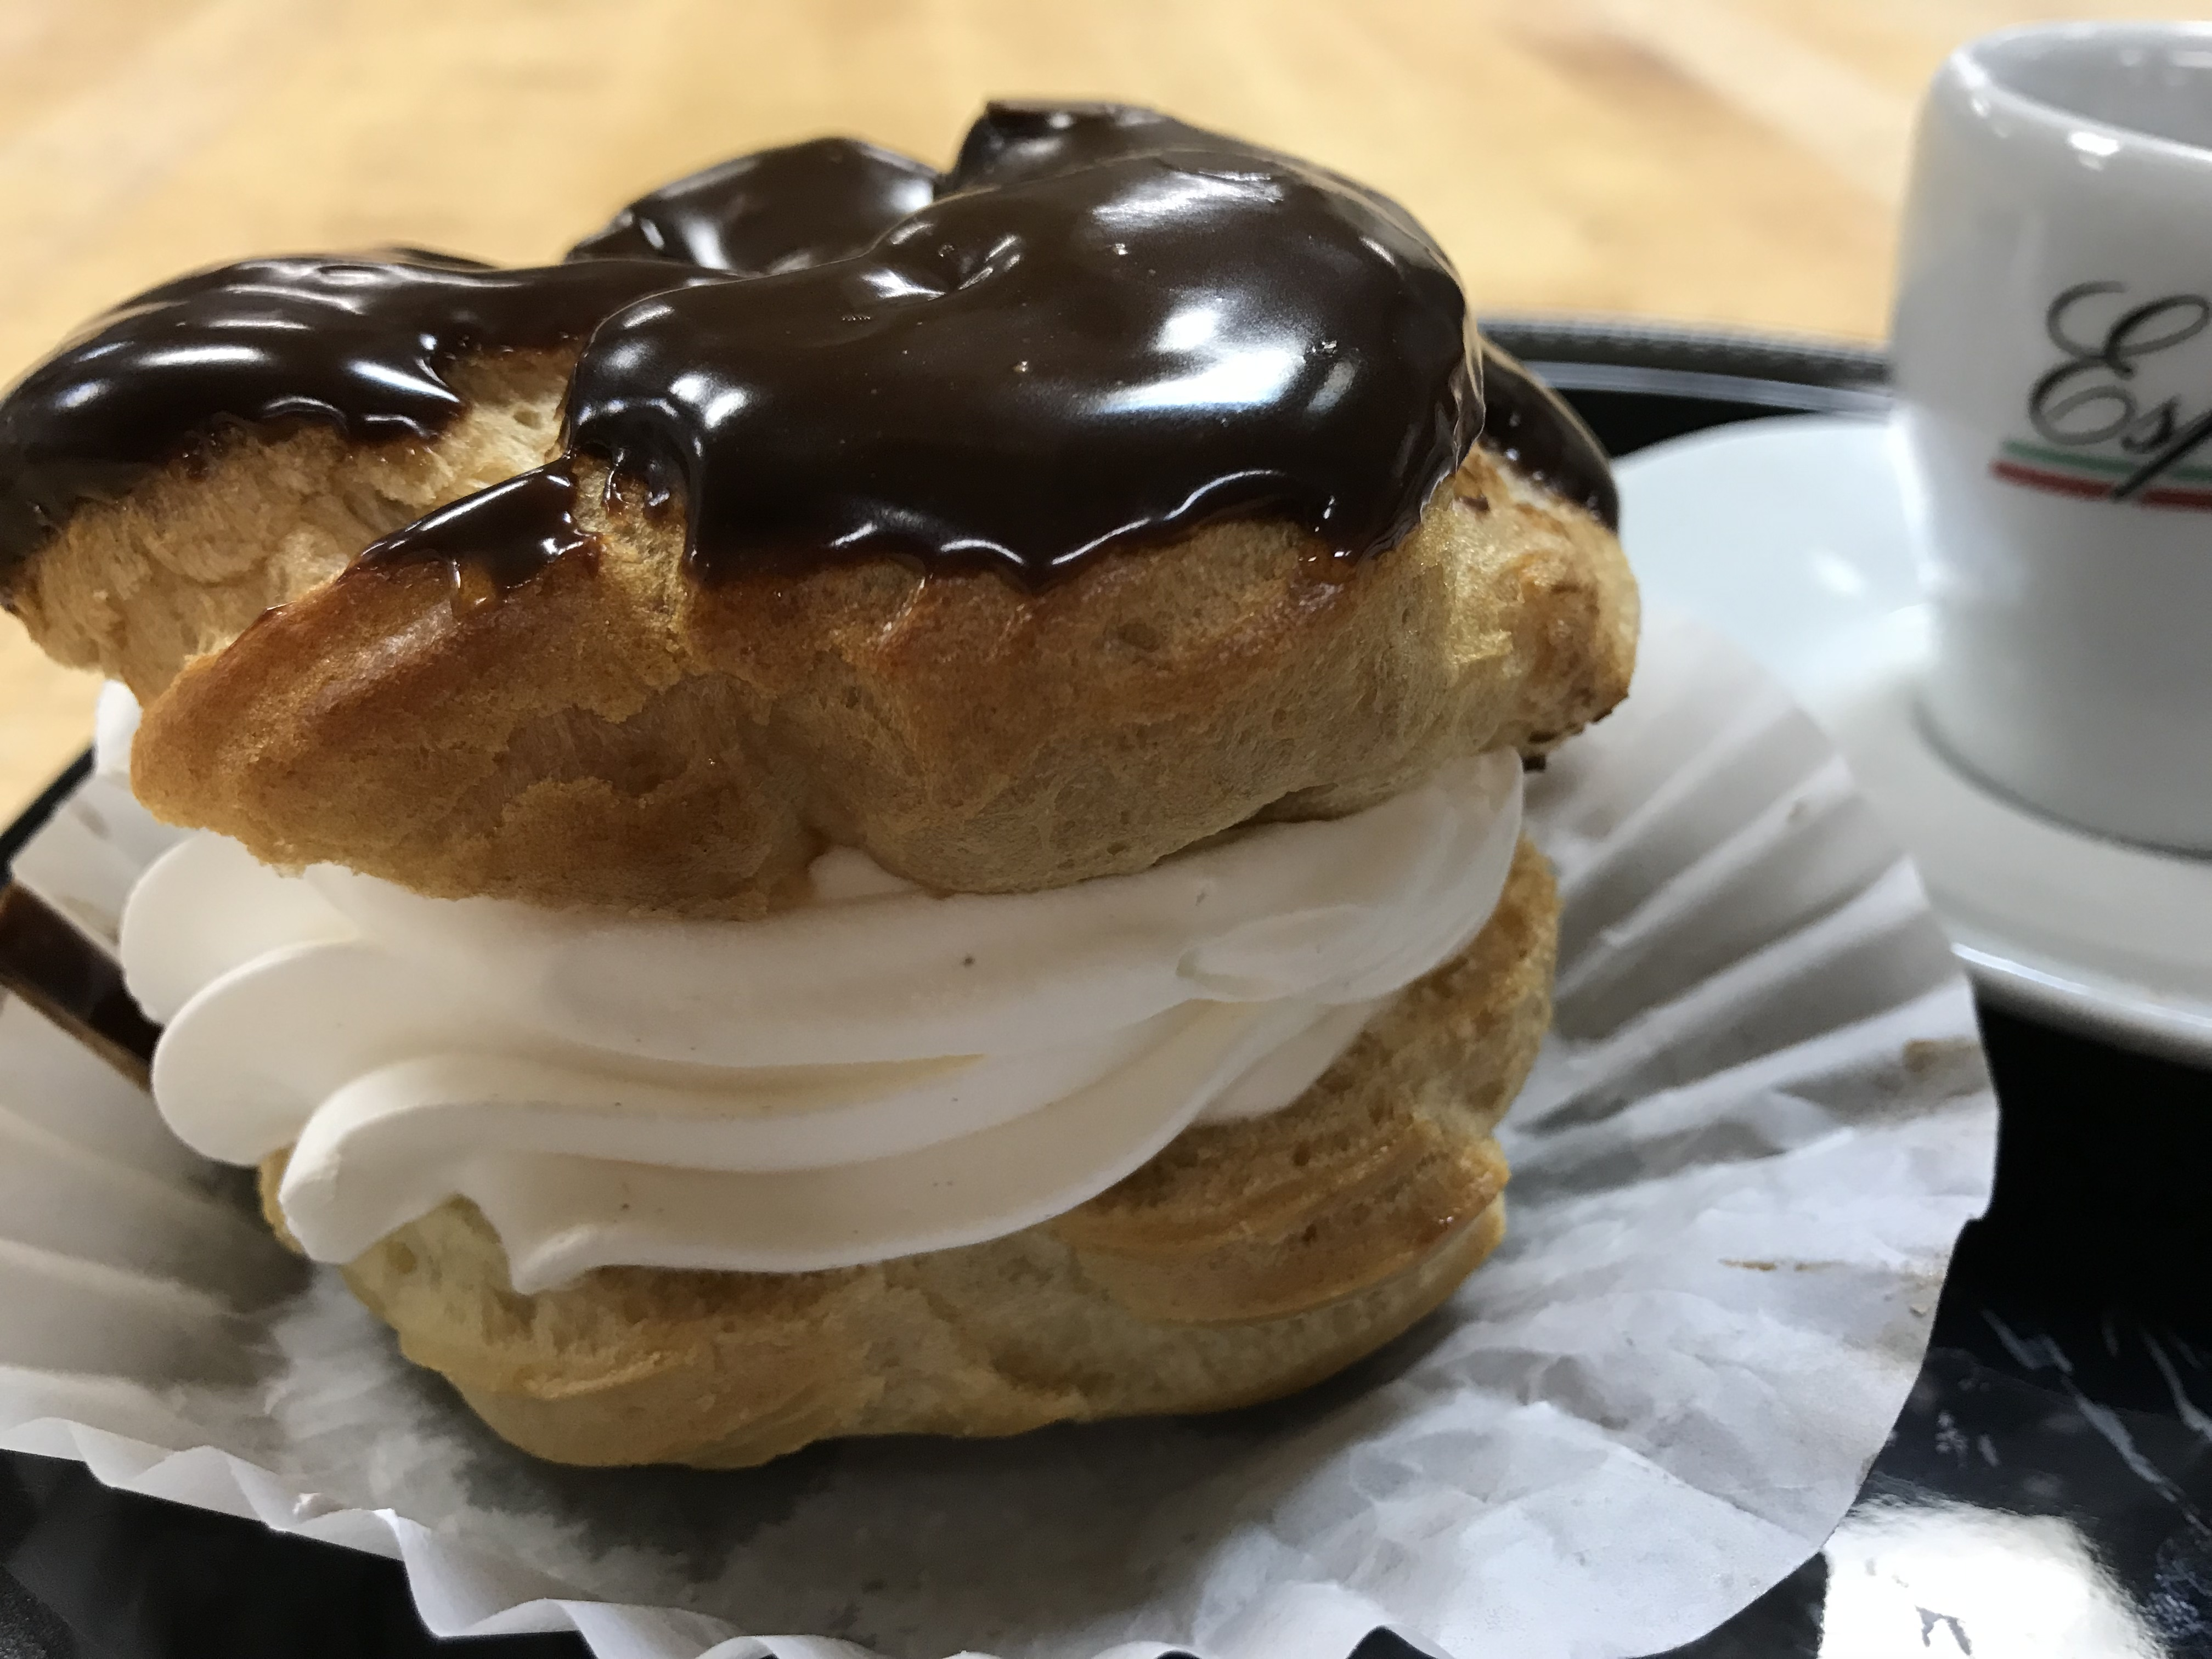 Cream Filled Pastry